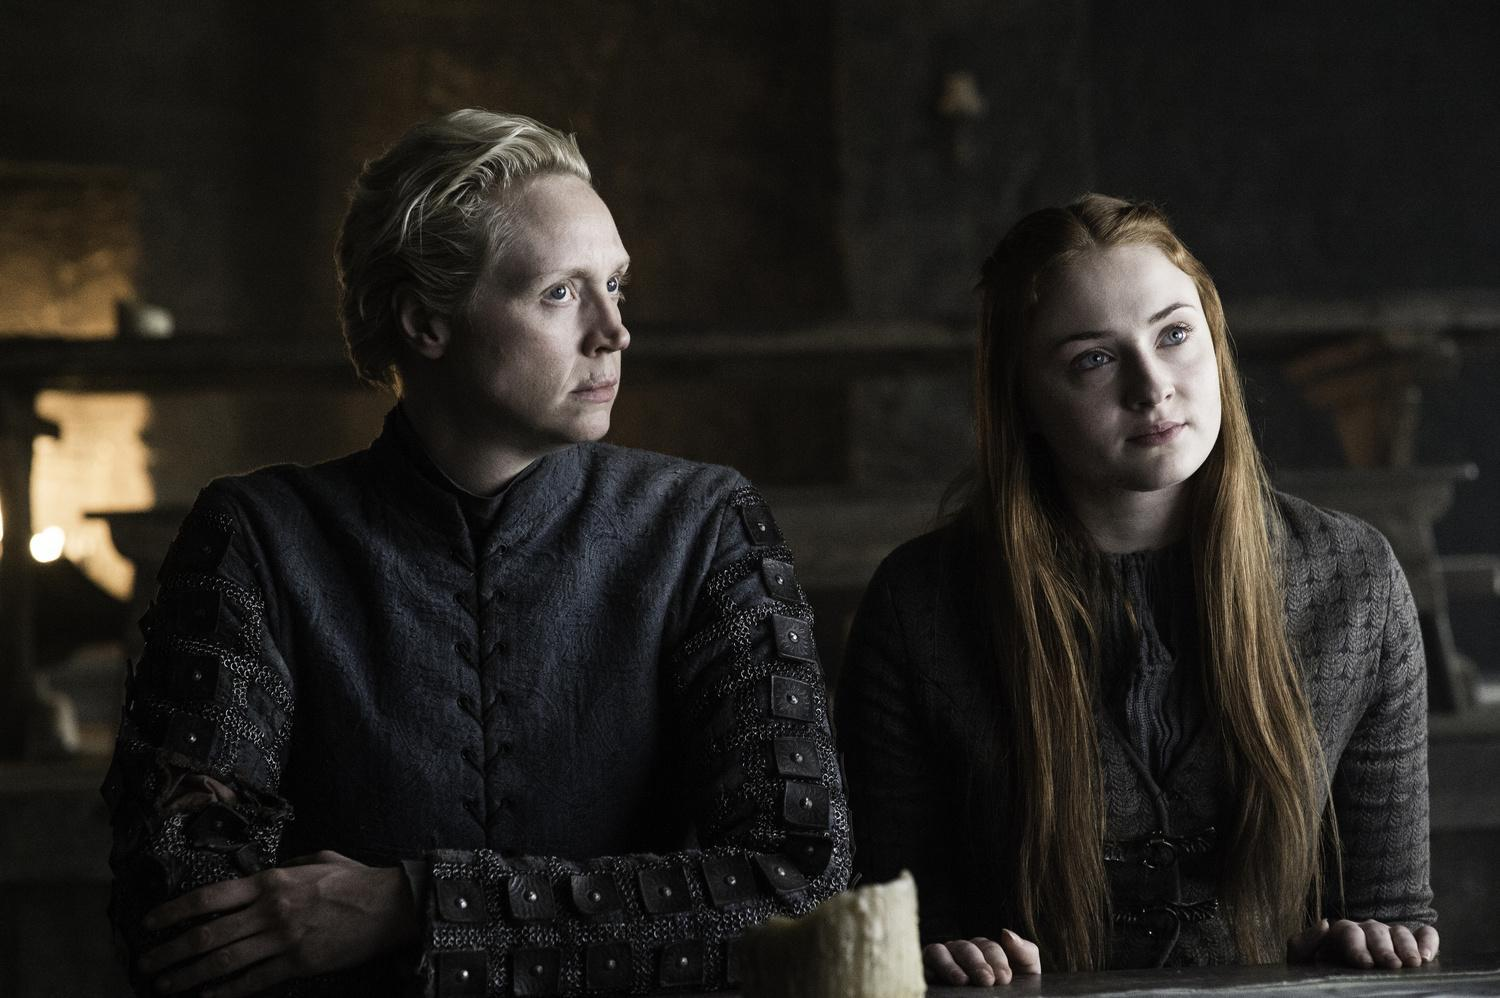 Photo: Gwendoline Christie as Brienne of Tarth and Sophie Turner as Sansa Stark Credit: Helen Sloan/HBO